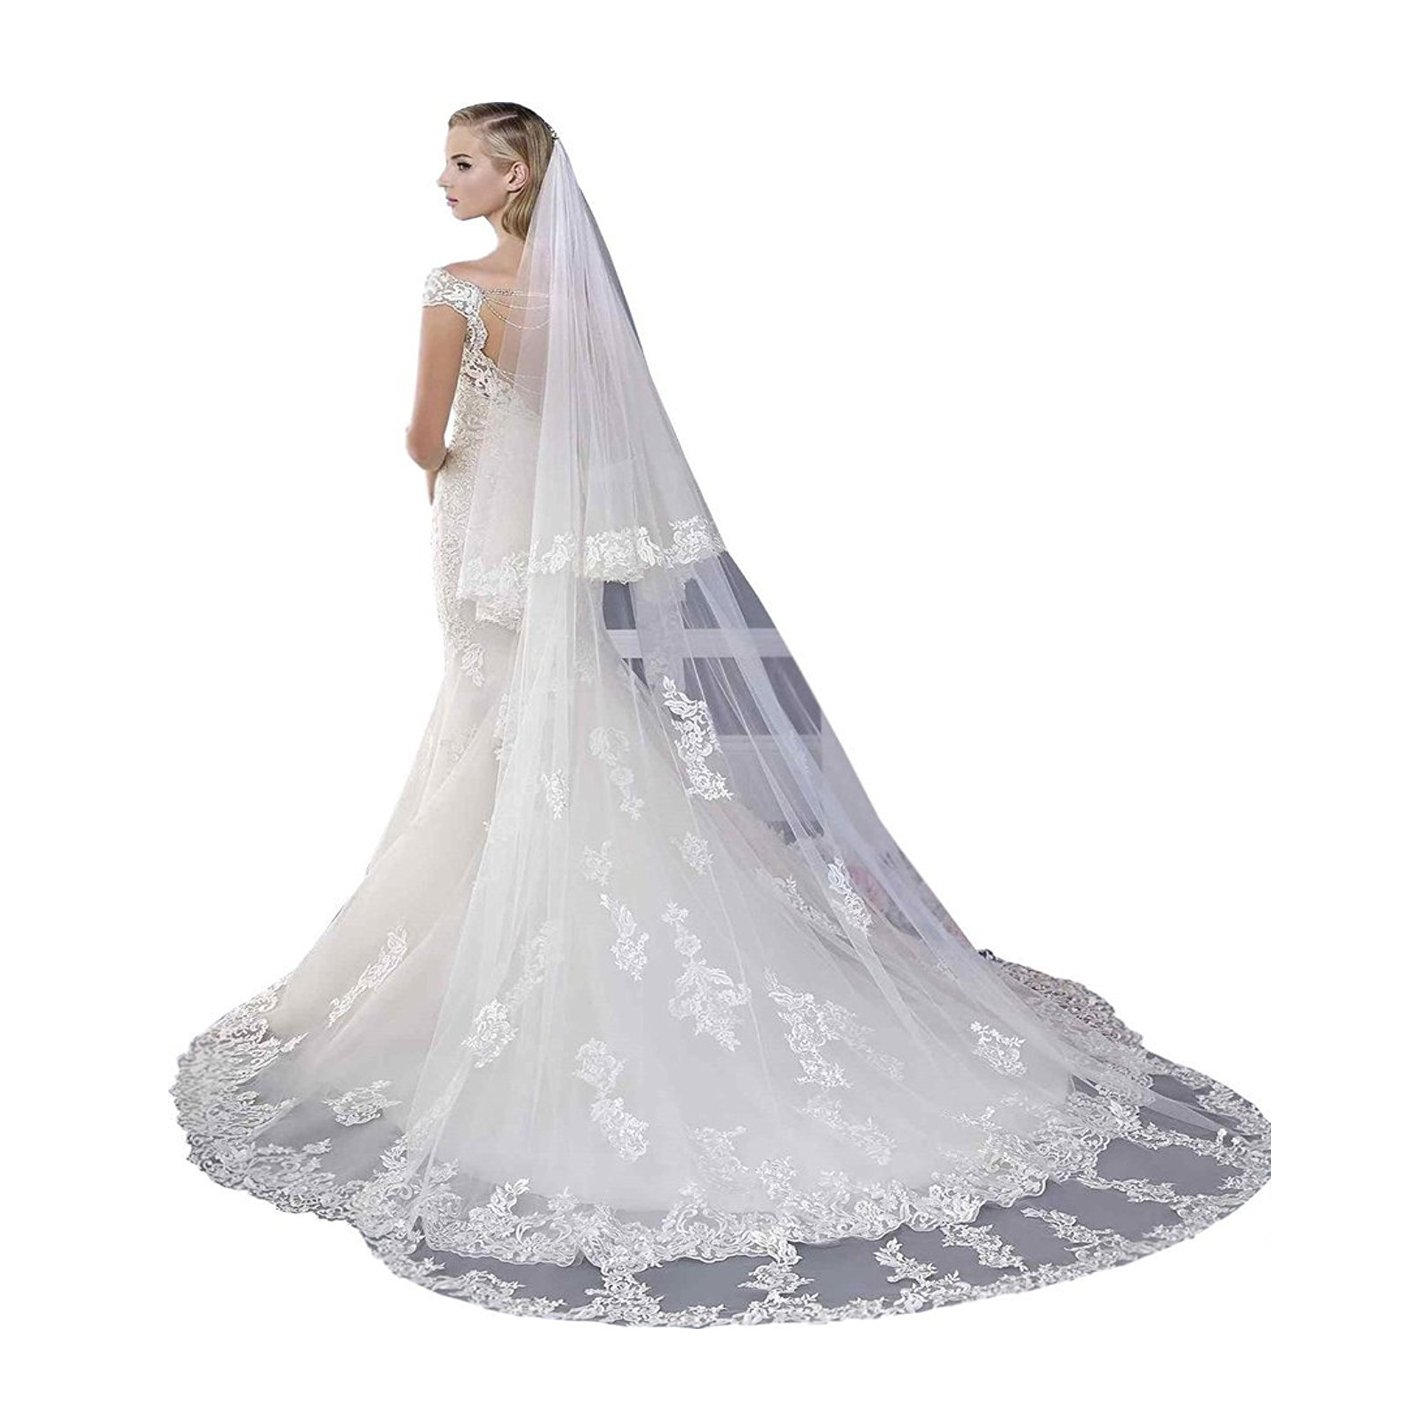 Kelaixiang 2T 2 Tiers Lace Appliqued Chapel Cathedral Bridal Veils